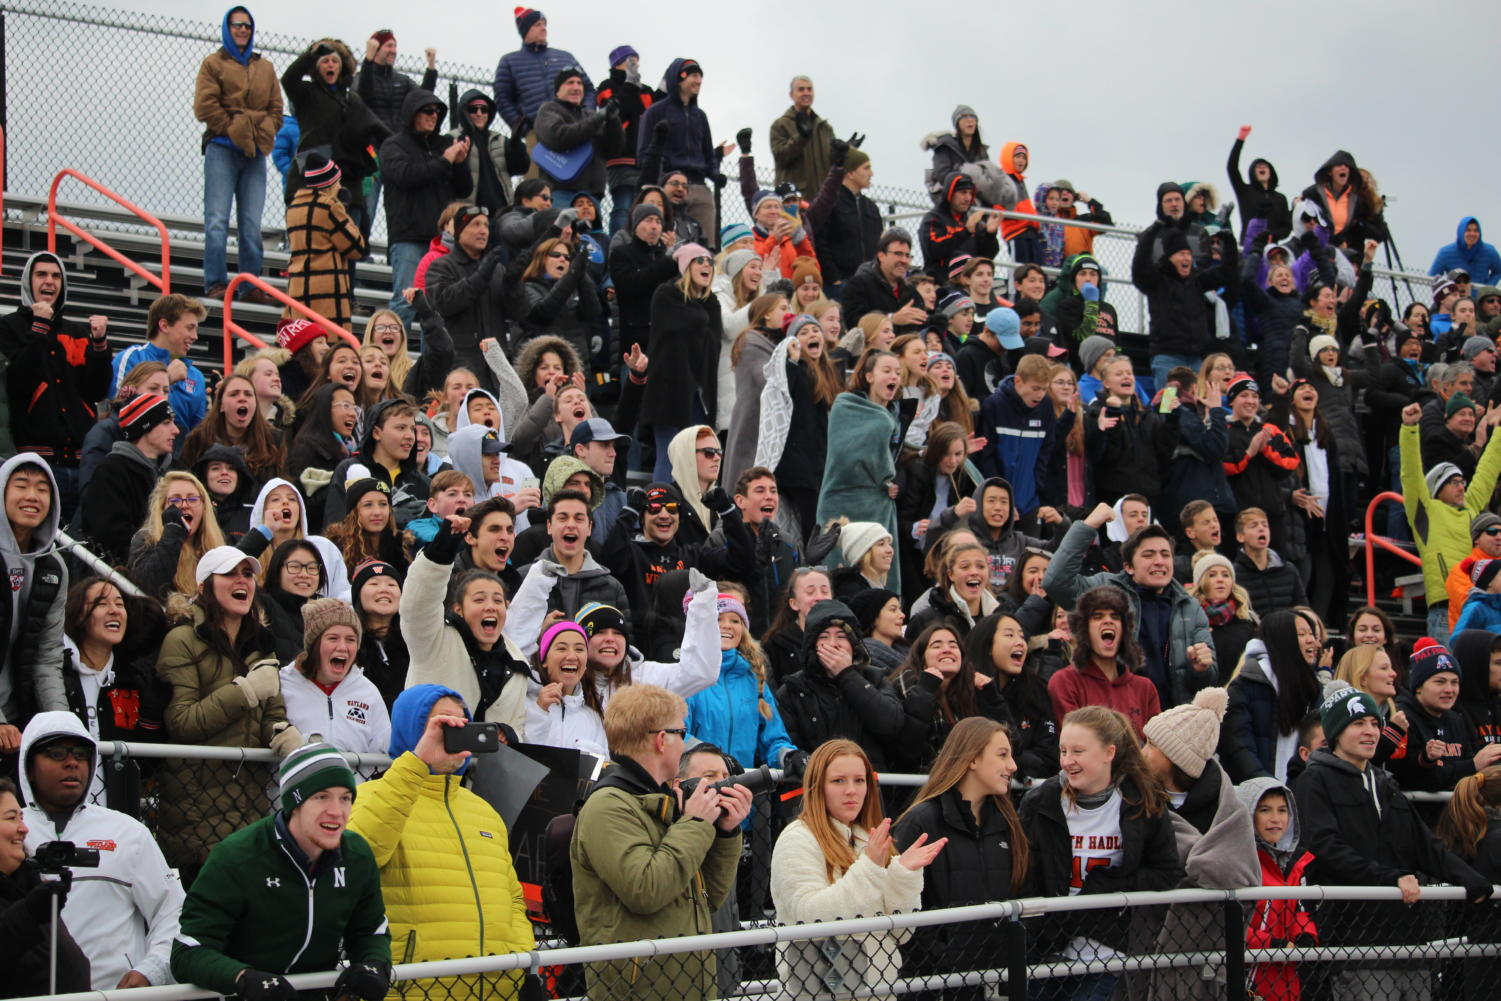 Fans+cheer+as+Wayland+scores.